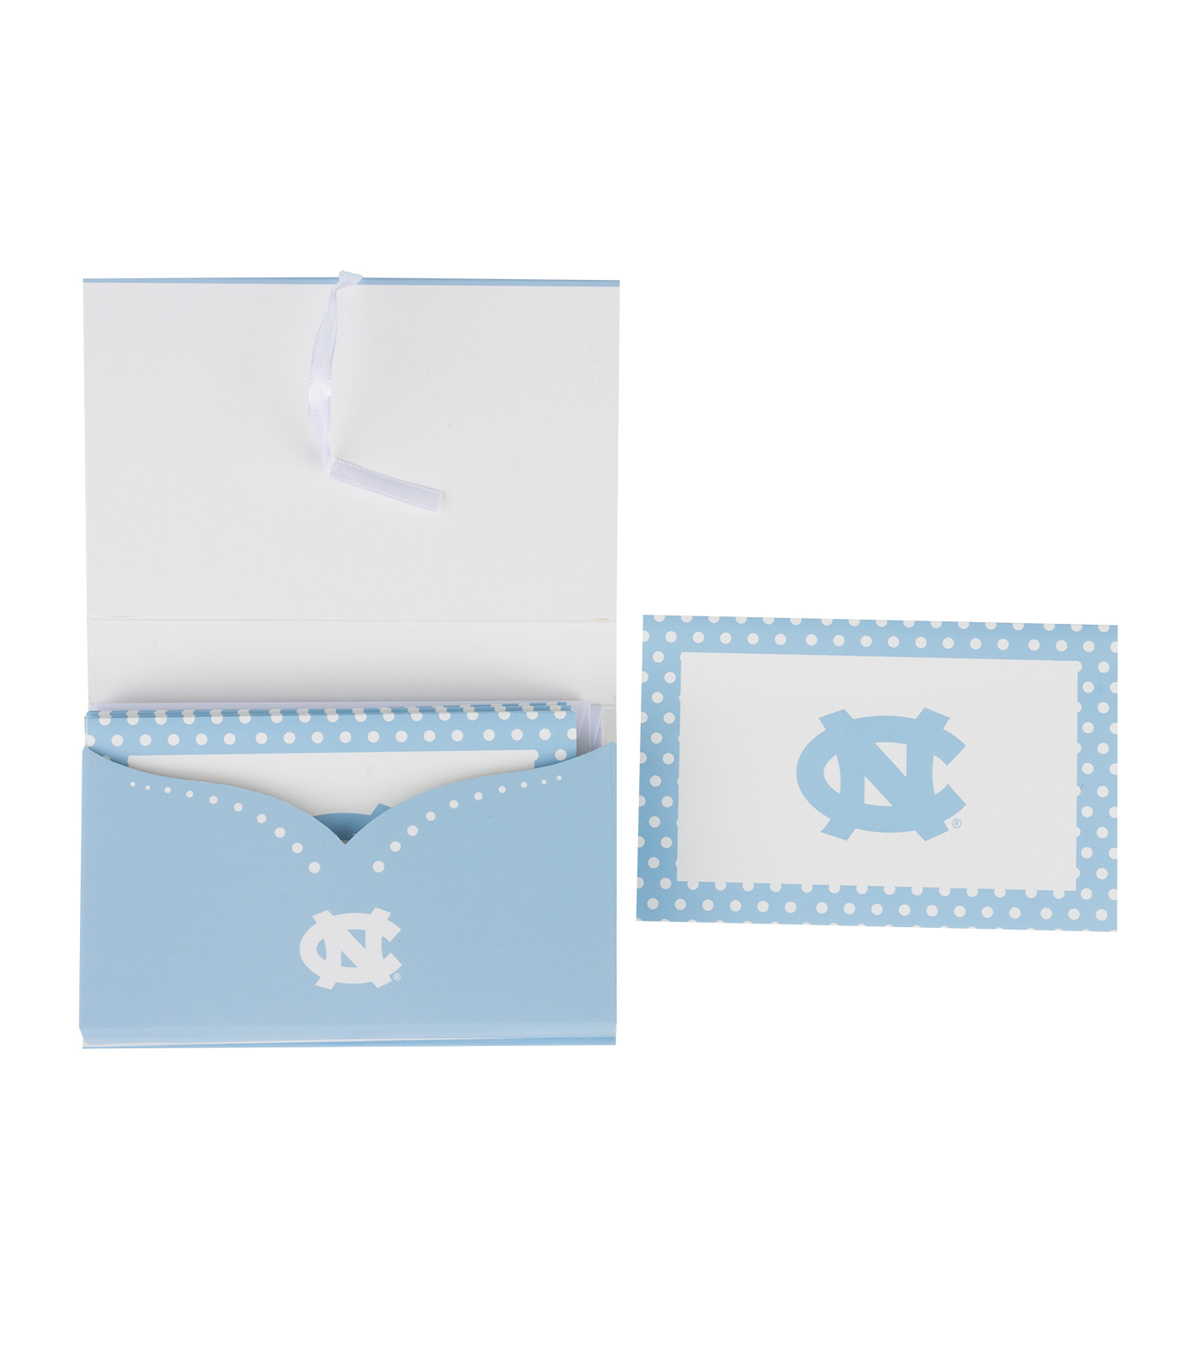 University of North Carolina Tarheels Note Card Set